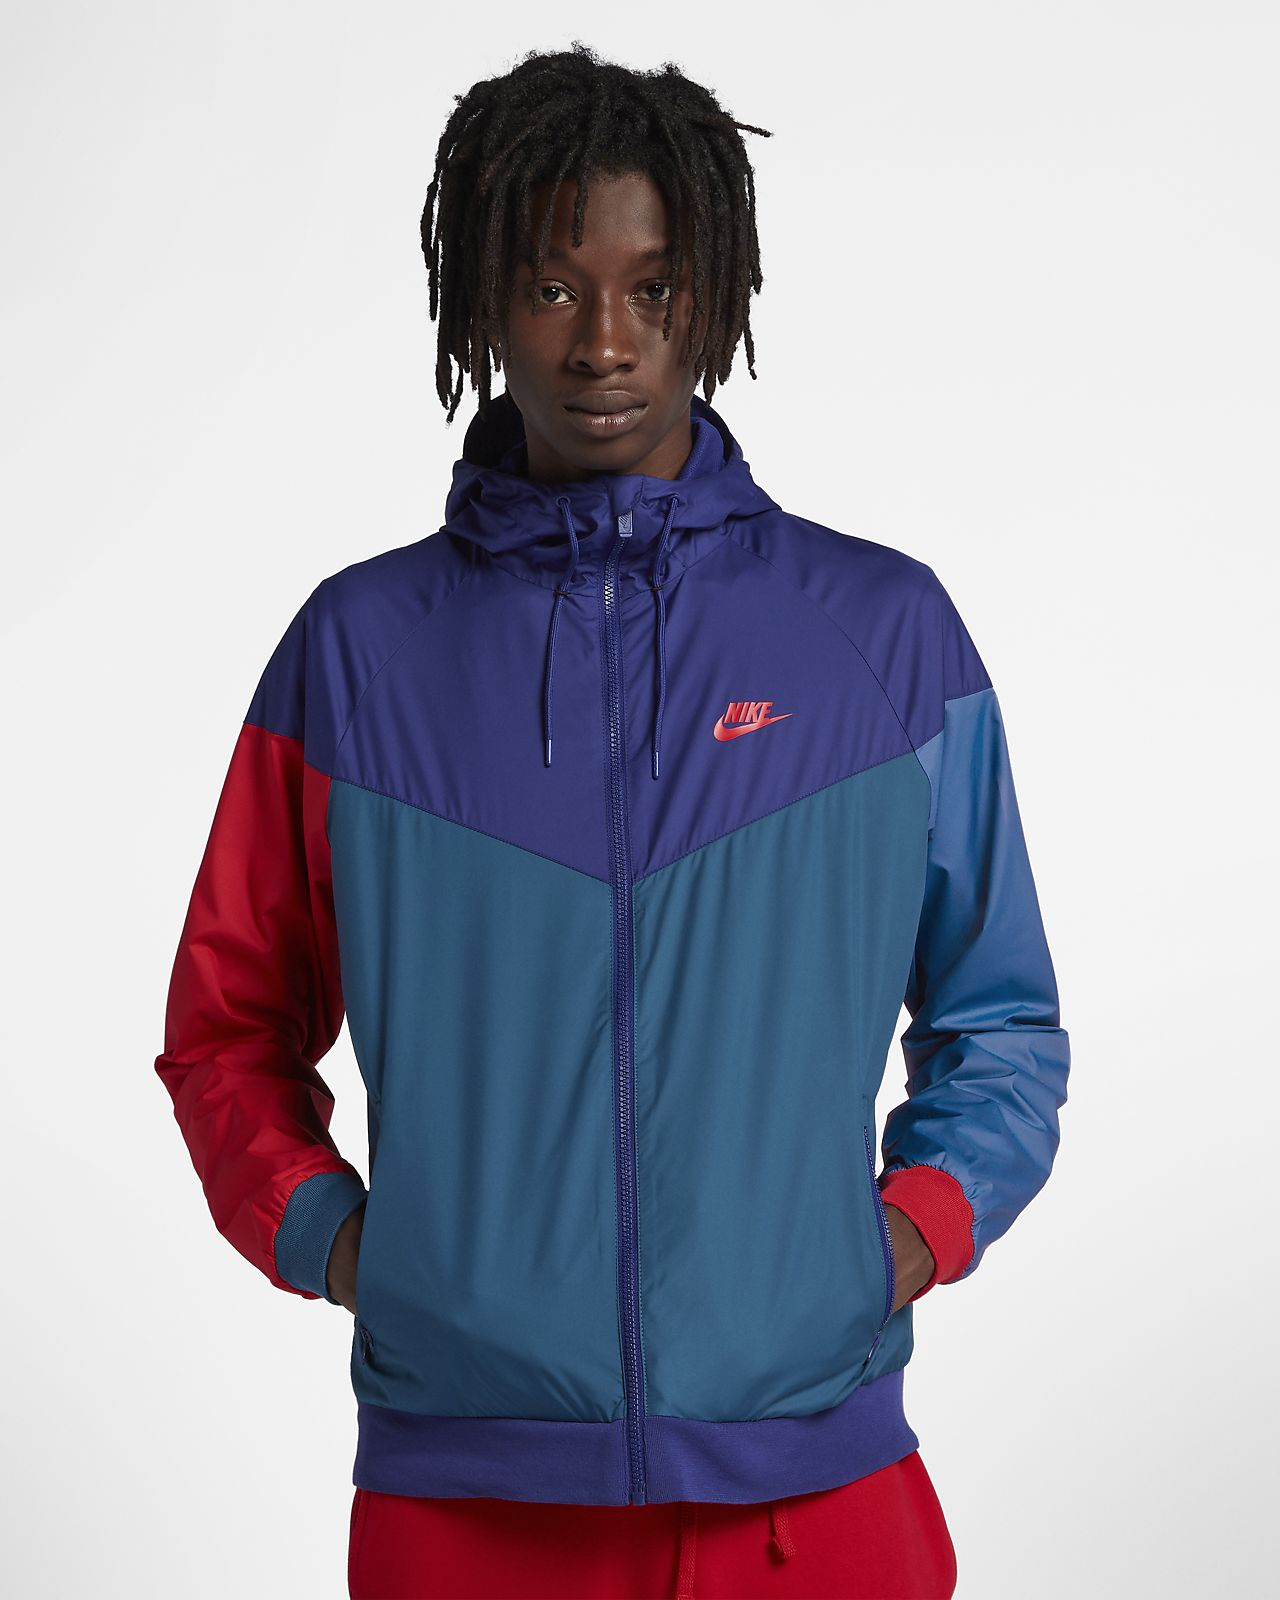 9bda8df0a8 Low Resolution Nike Sportswear Windrunner Men s Jacket Nike Sportswear  Windrunner Men s Jacket